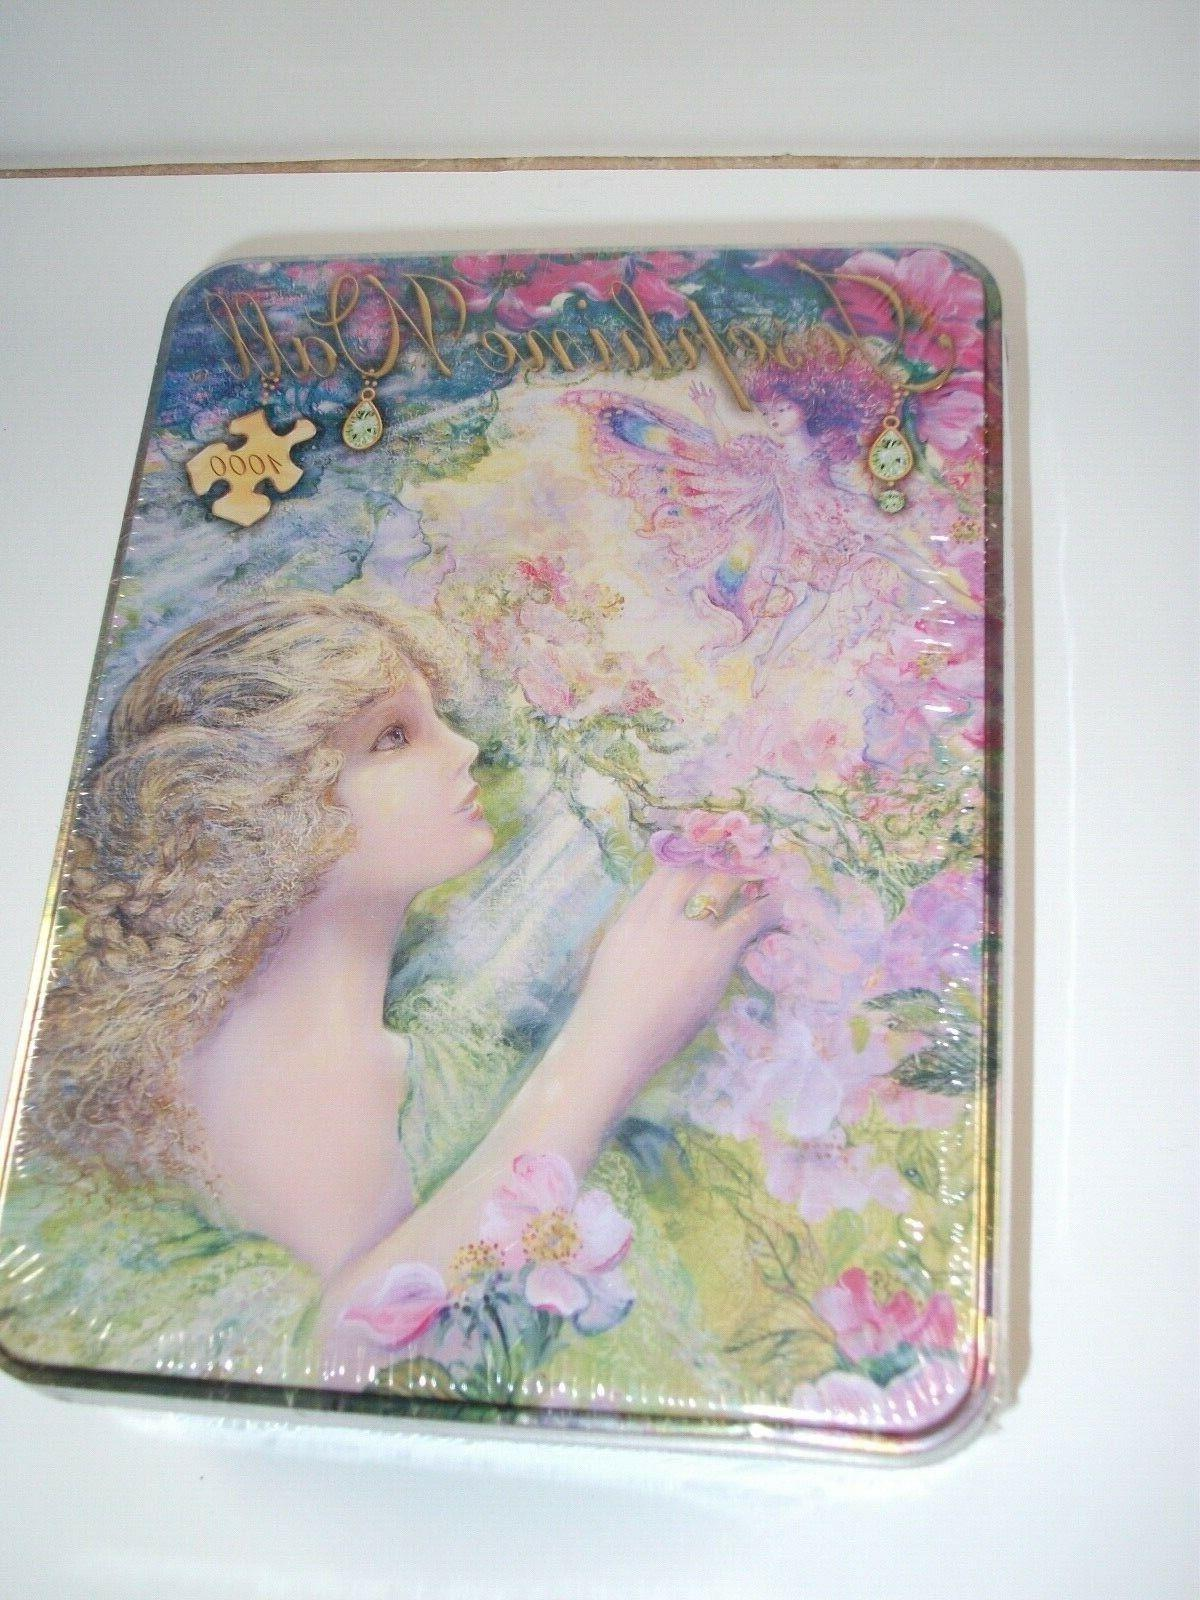 new josephine wall 1000 puzzle sweet briar